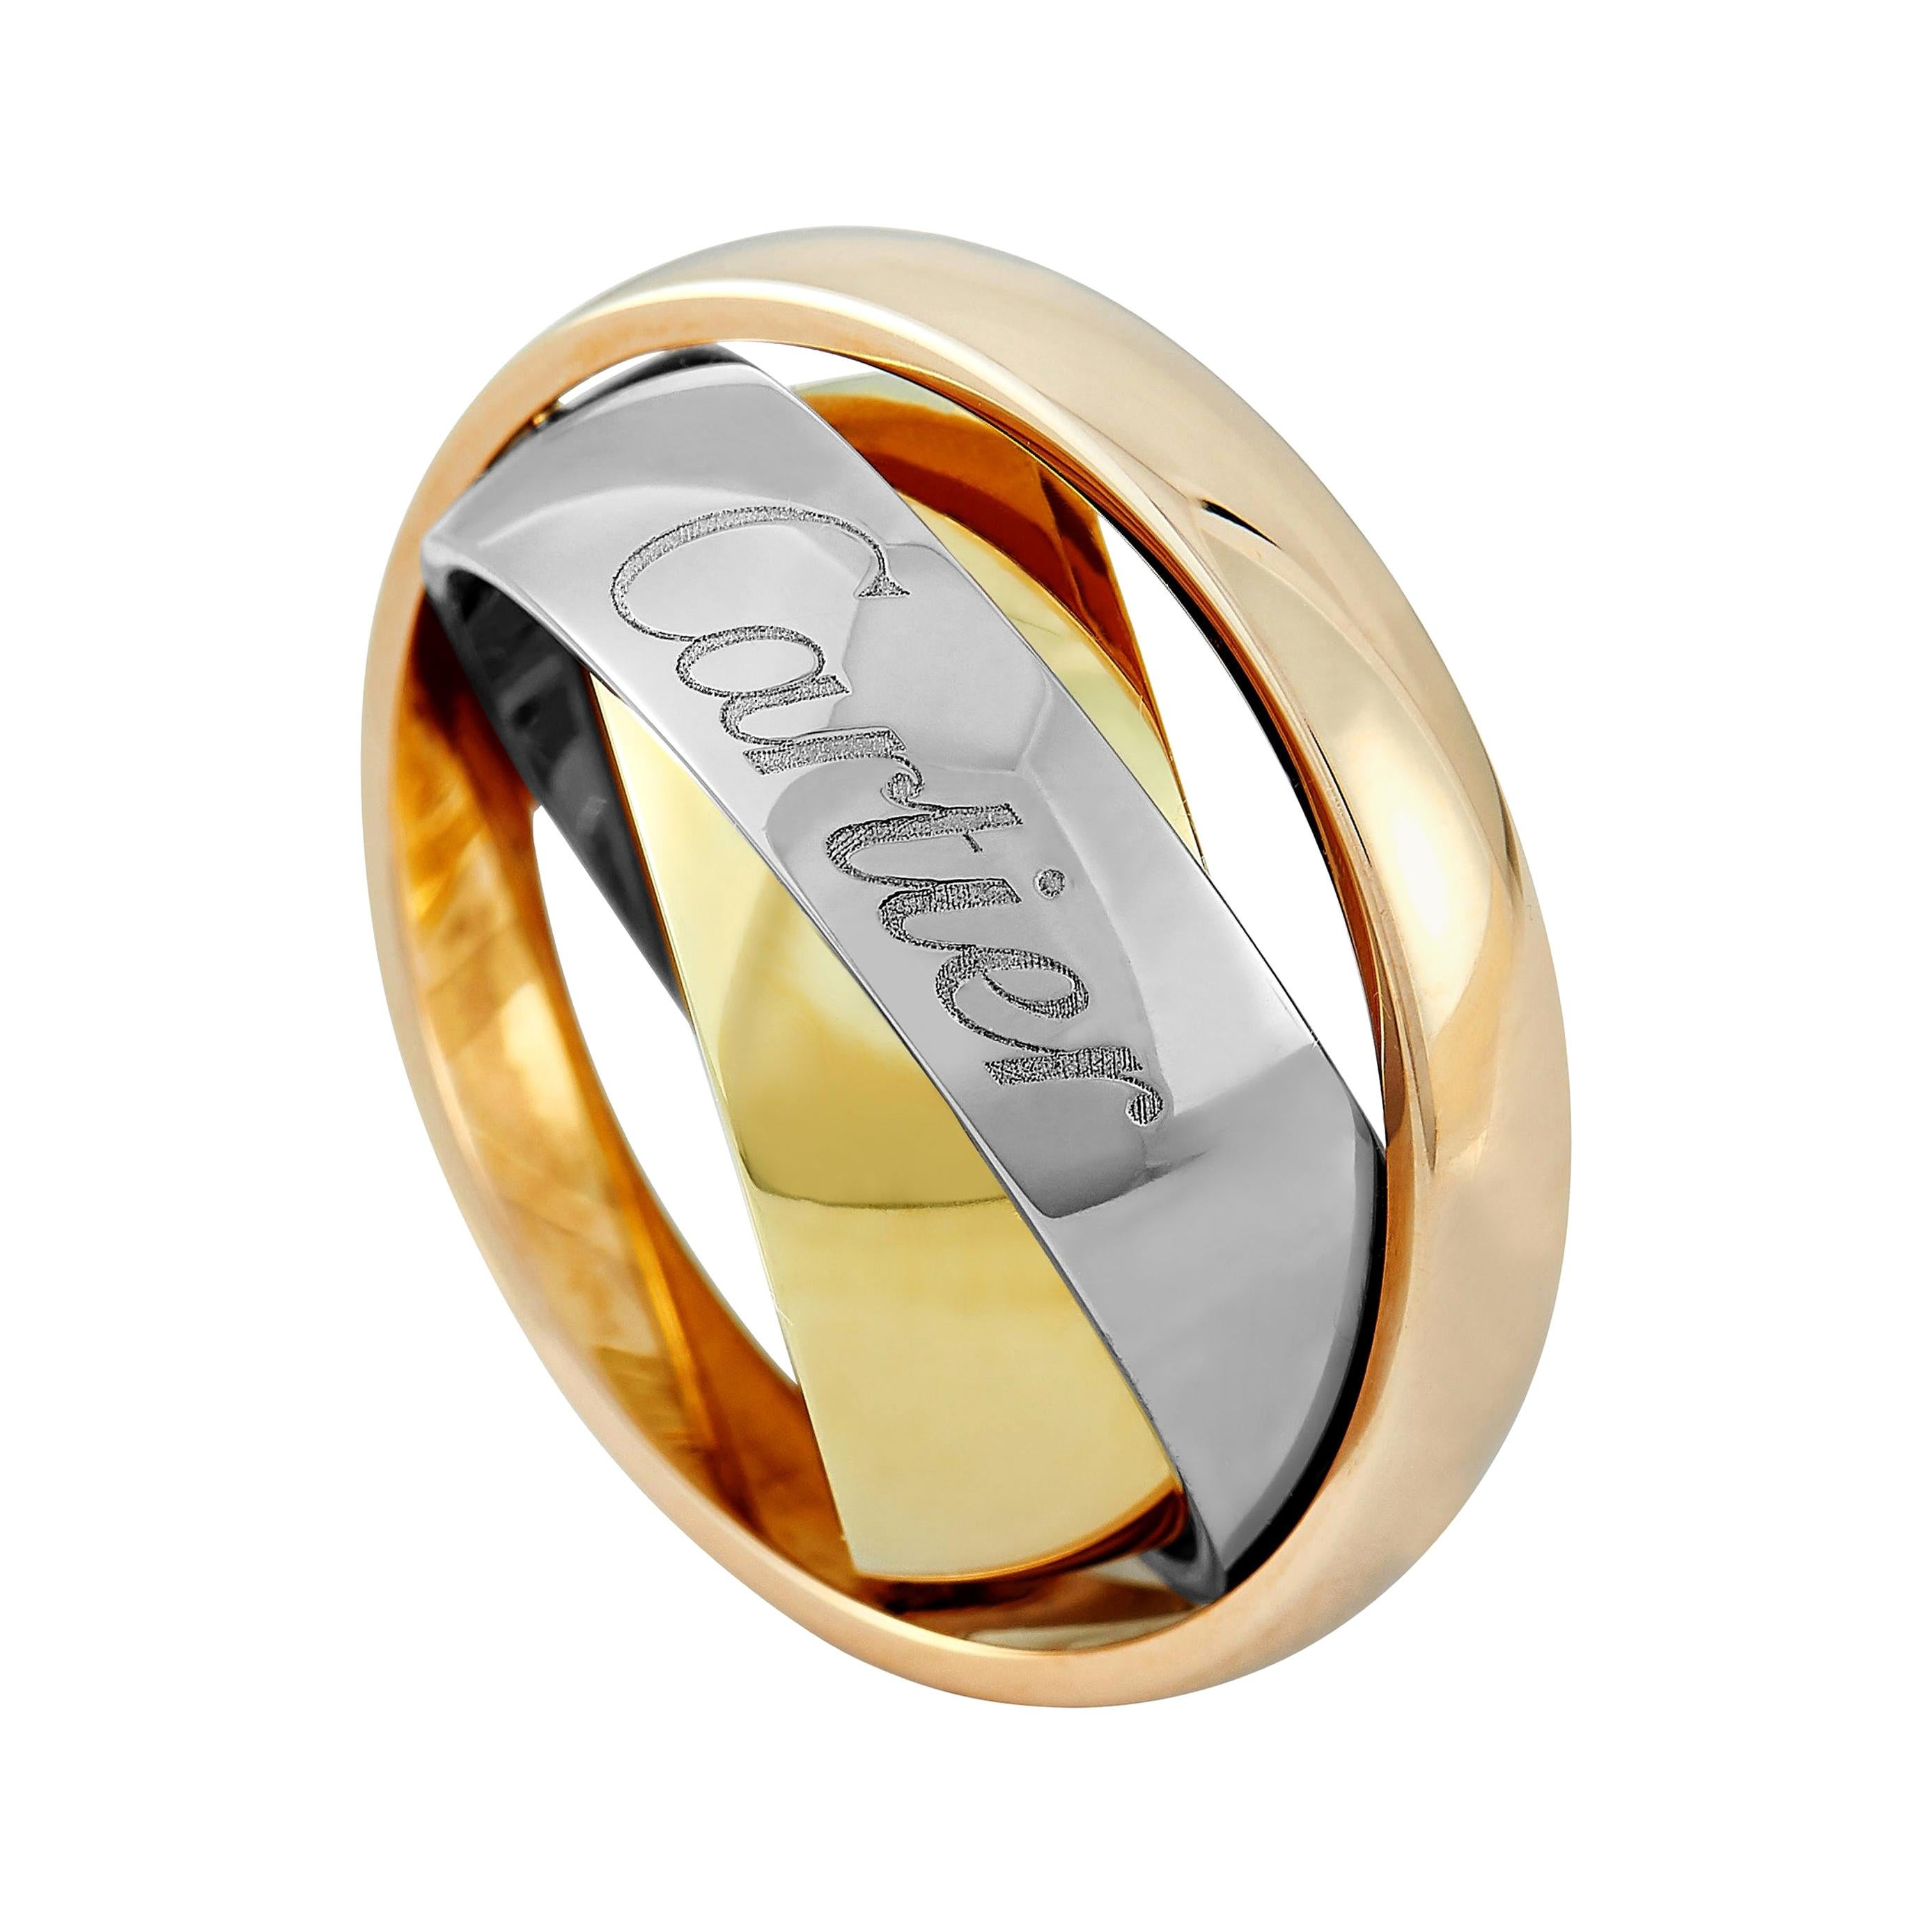 Cartier Trinity 18 Karat Yellow, White, and Rose Gold Ring